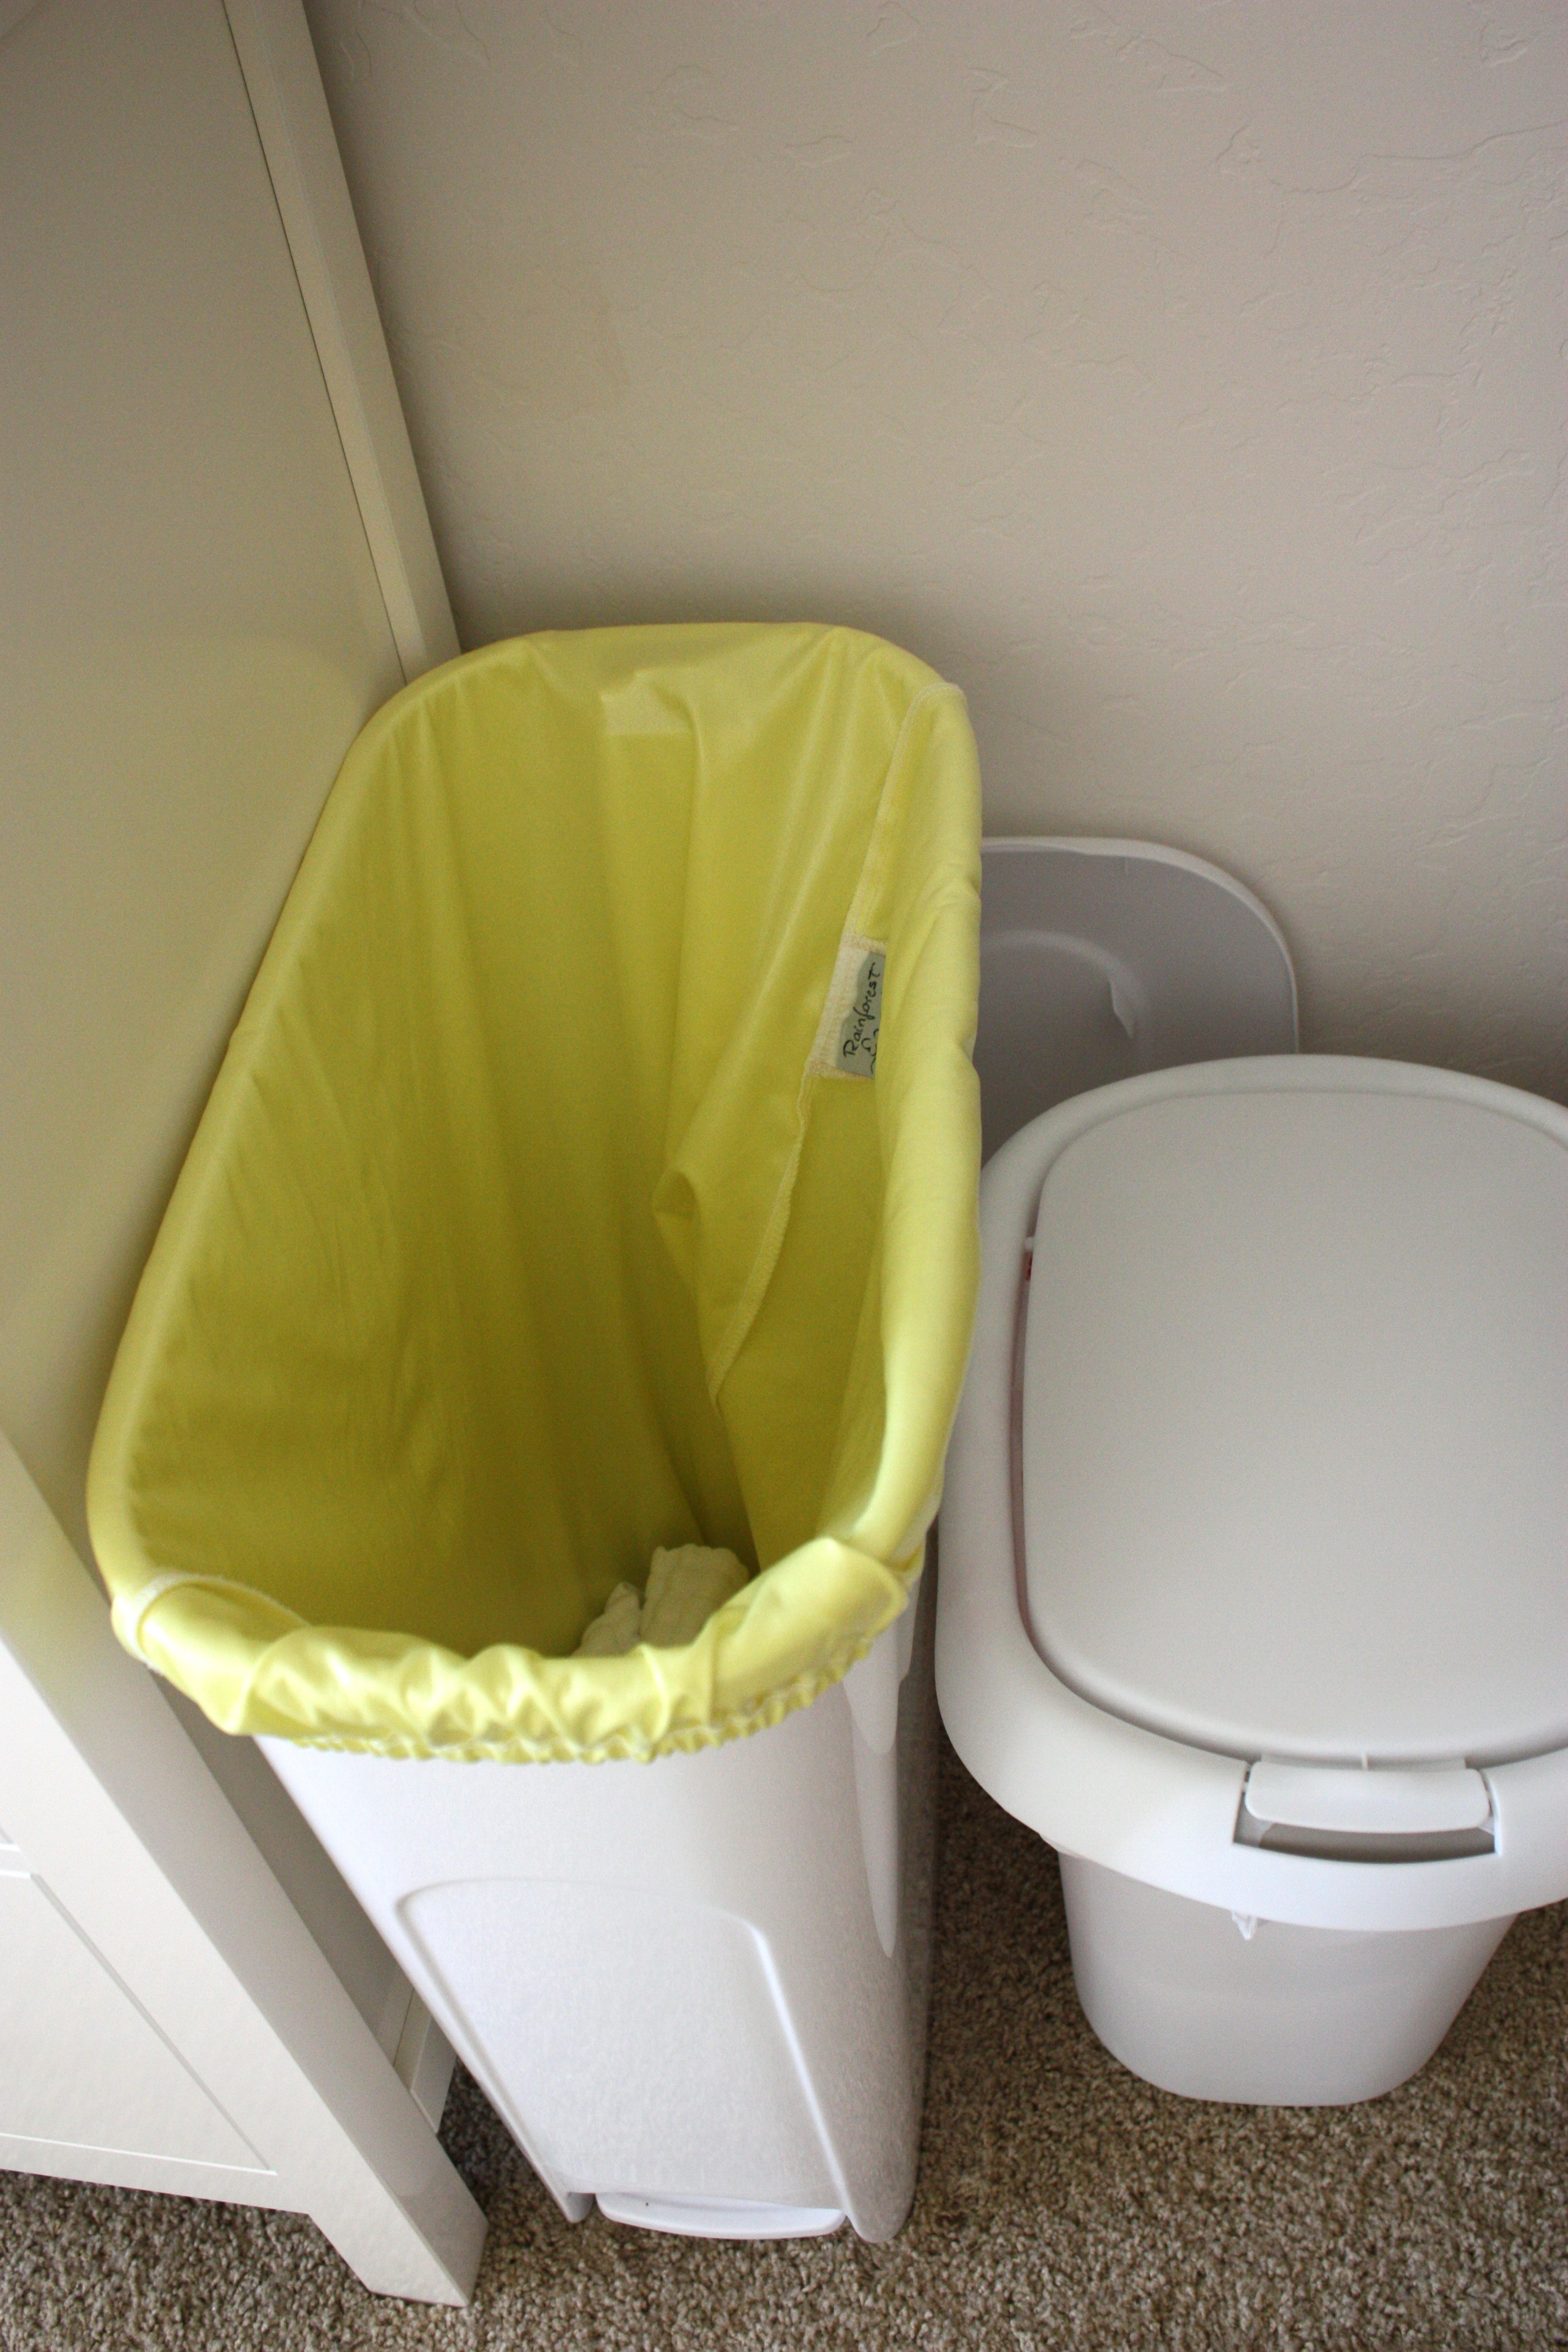 Gwhiz Gdiapers 101 My Changing Station And Procedures Joyful